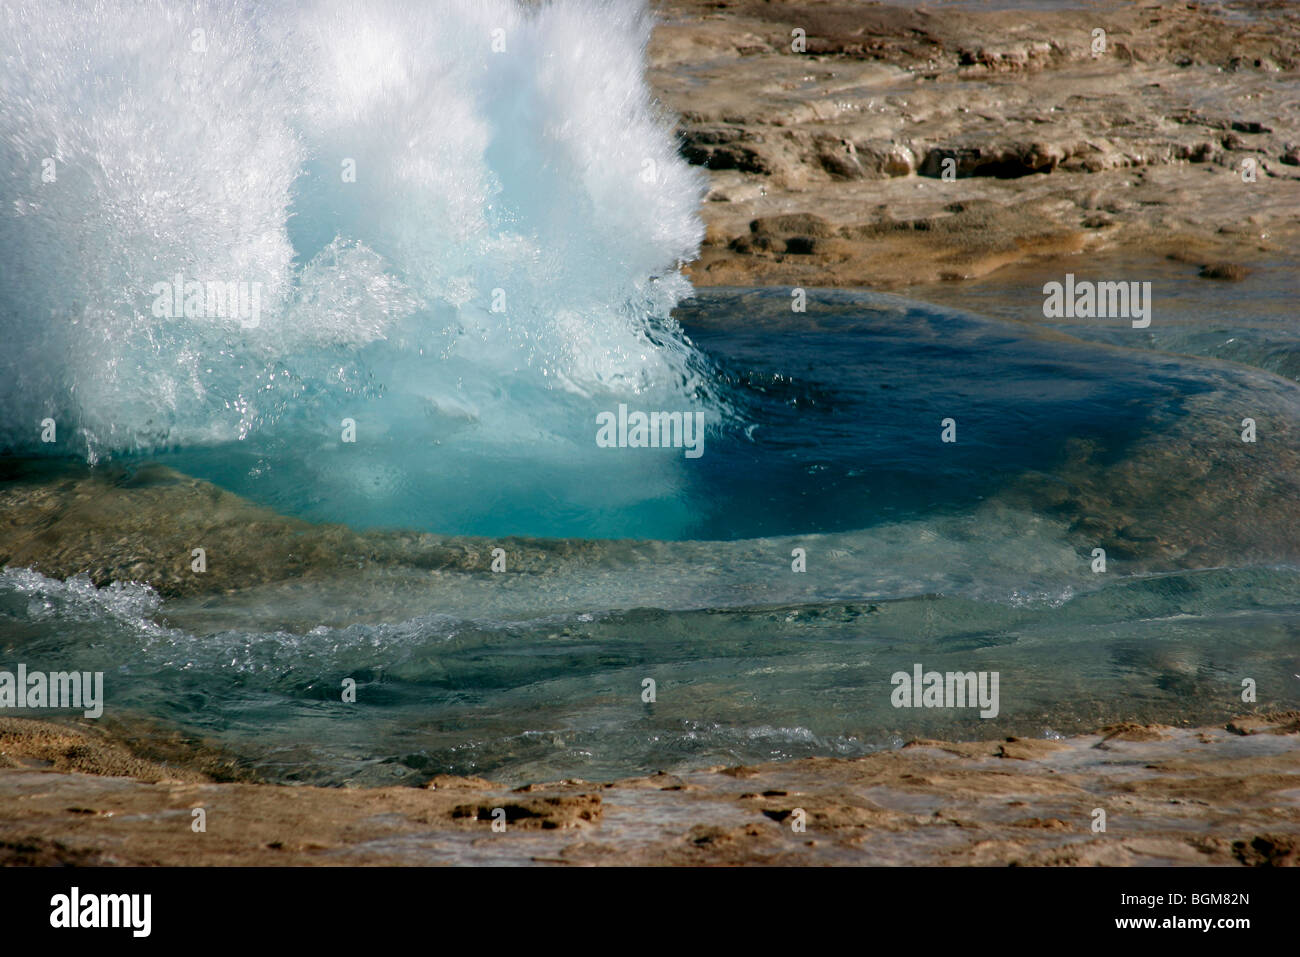 Eruption of the Strokkur / churn, fountain geyser in the geothermal area beside the Hvítá River in Iceland Stock Photo